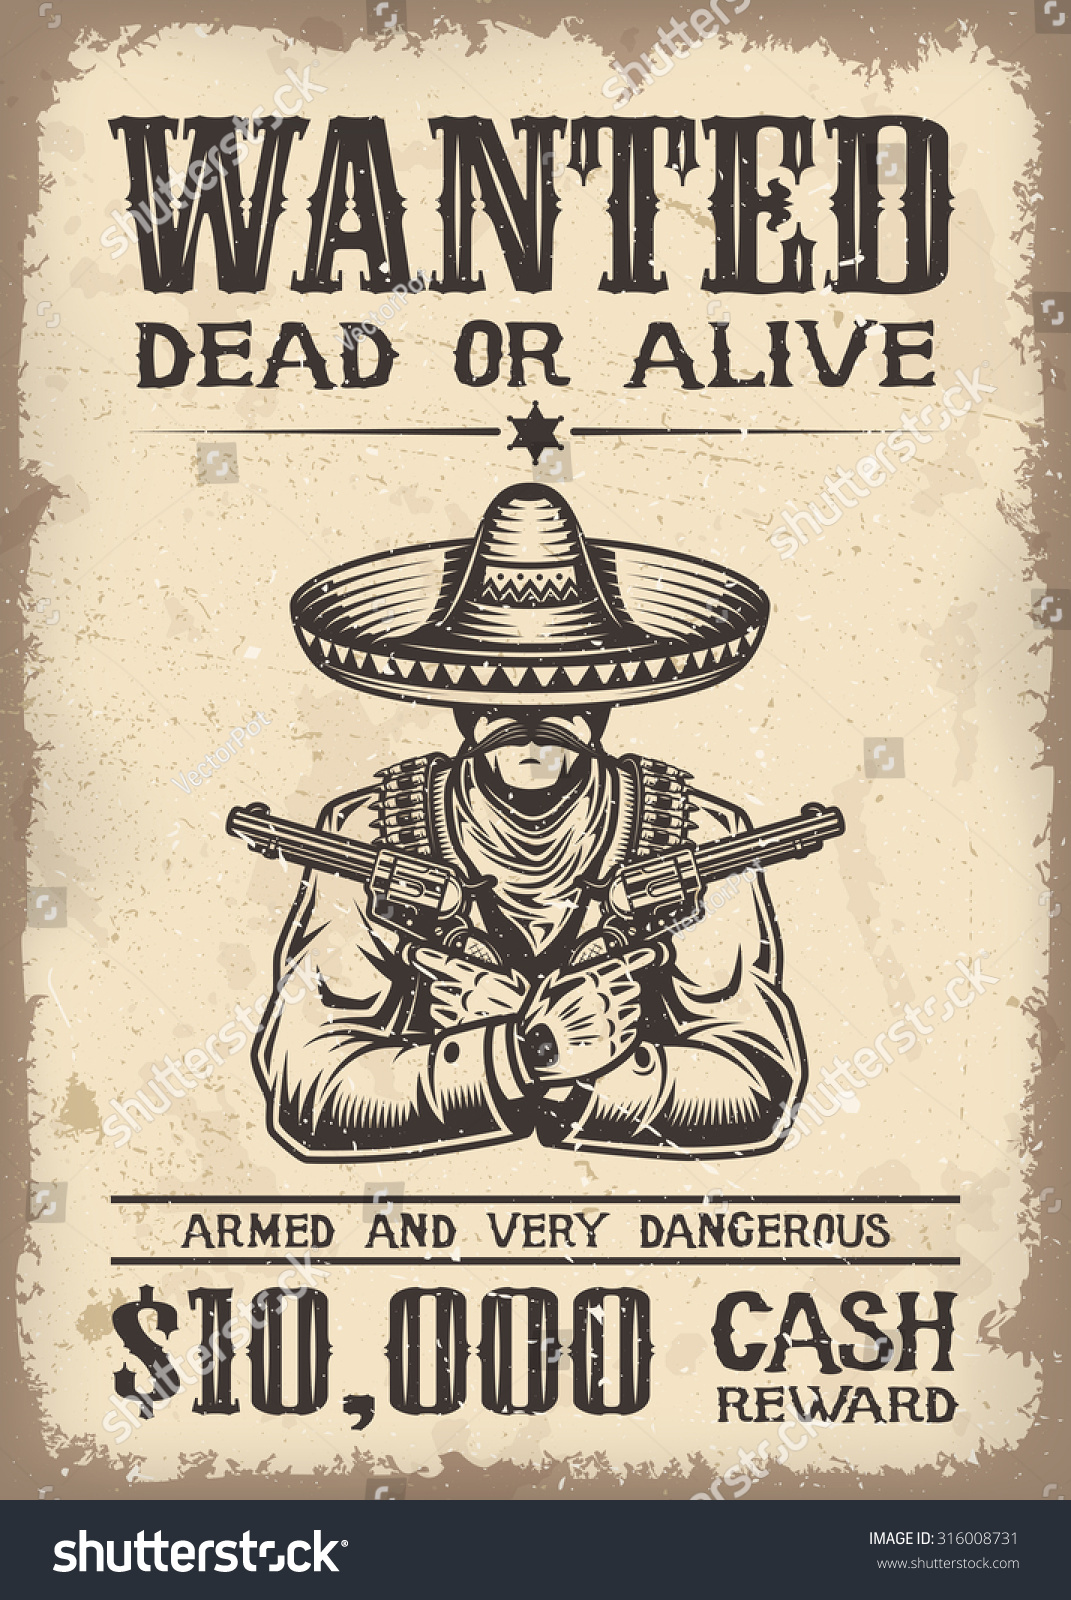 Vintage Wild West Wanted Poster Old Vector 316008731 – Picture of a Wanted Poster